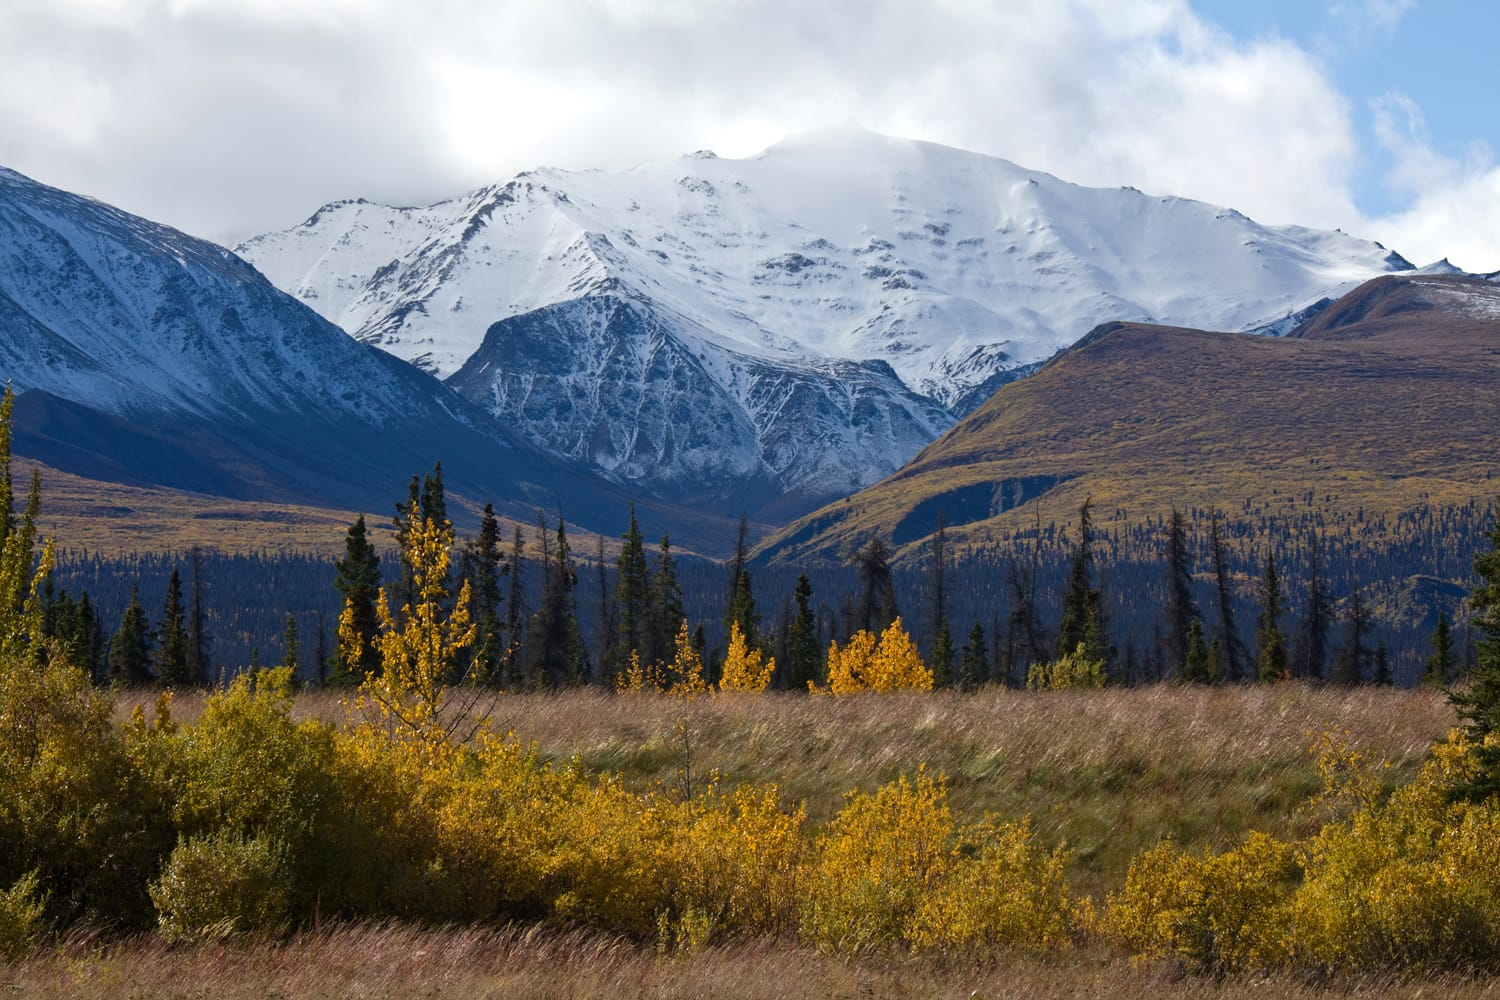 Kluane National Park in Canada